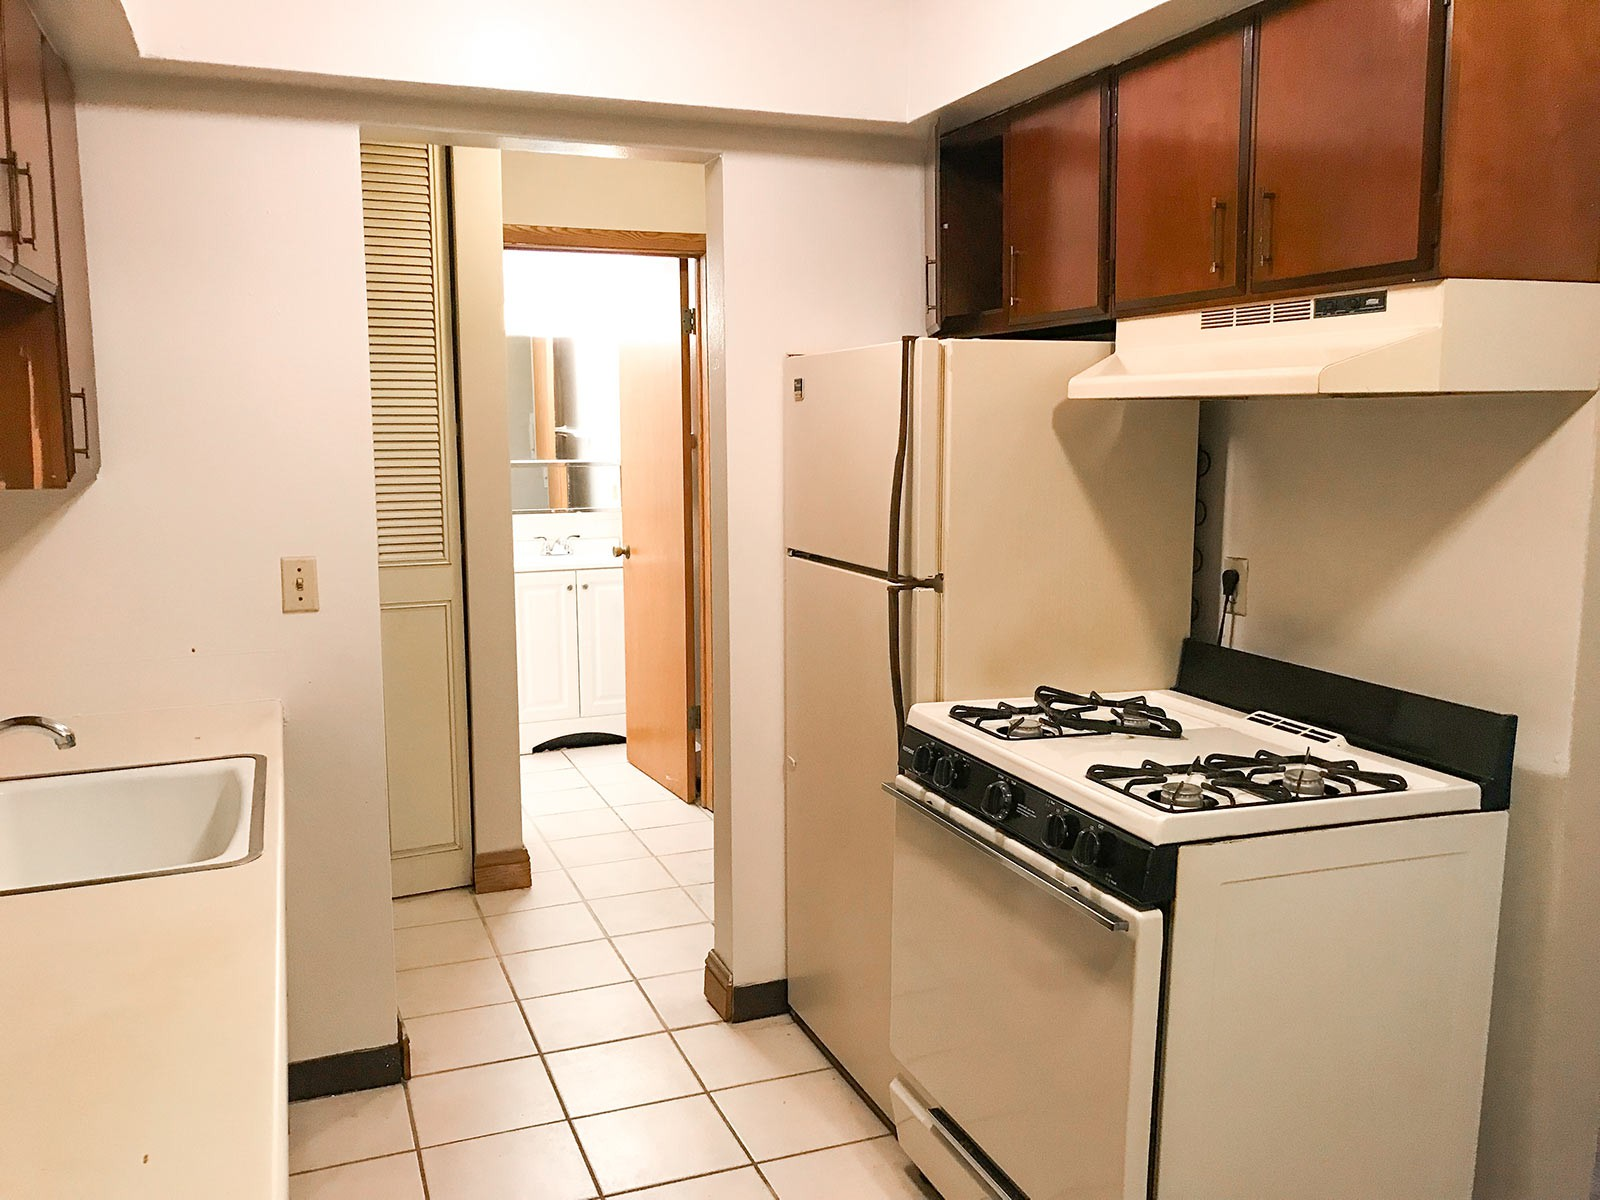 Apartments Near MATC 2131 N. Summit for Milwaukee Area Technical College Students in Milwaukee, WI